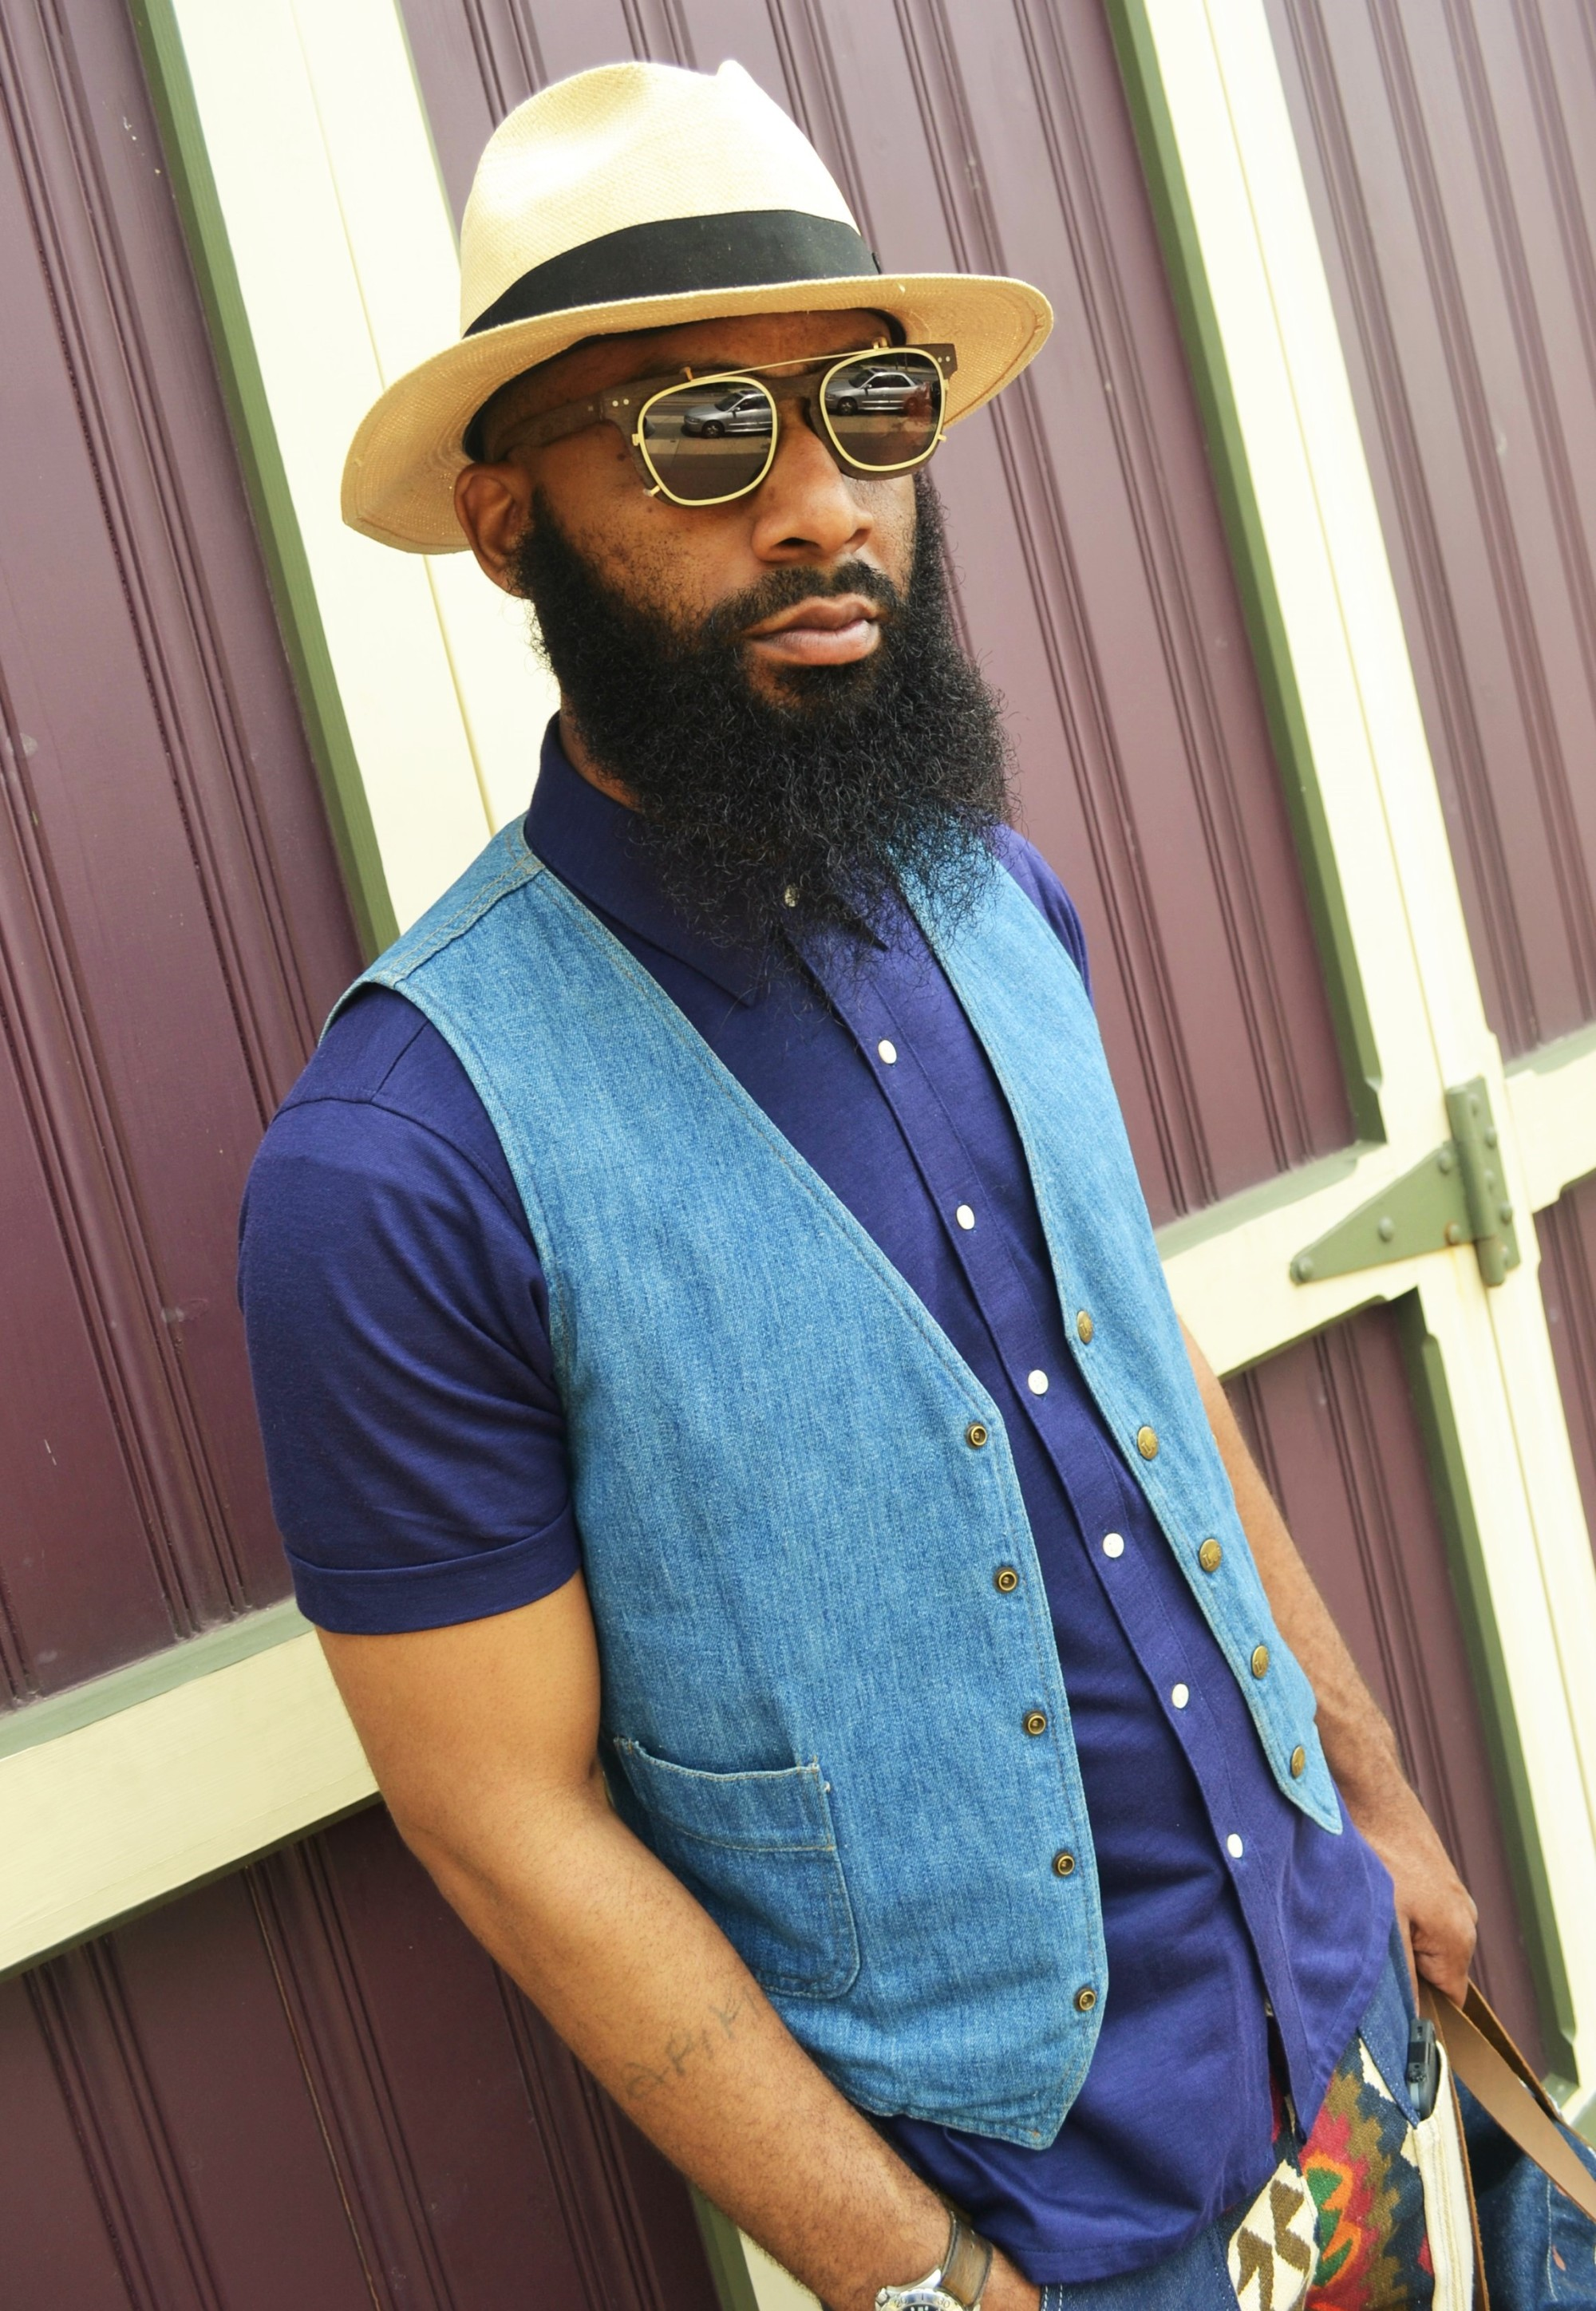 Custom Lifestyle by: Hamid Holloman on Men's Style Pro